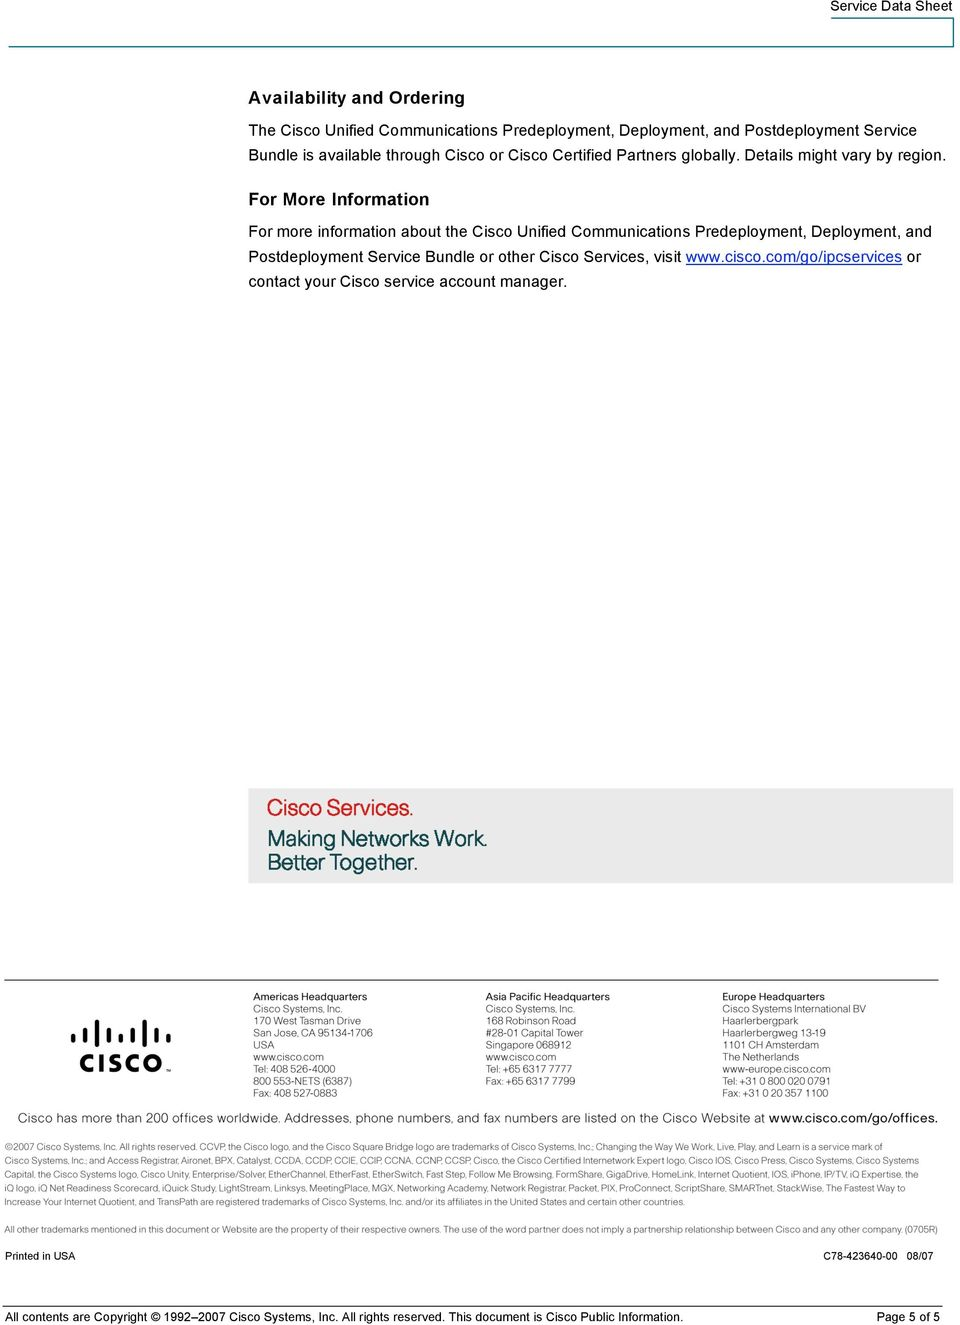 Bundle or other Cisco Services, visit www.cisco.com/go/ipcservices or contact your Cisco service account manager.